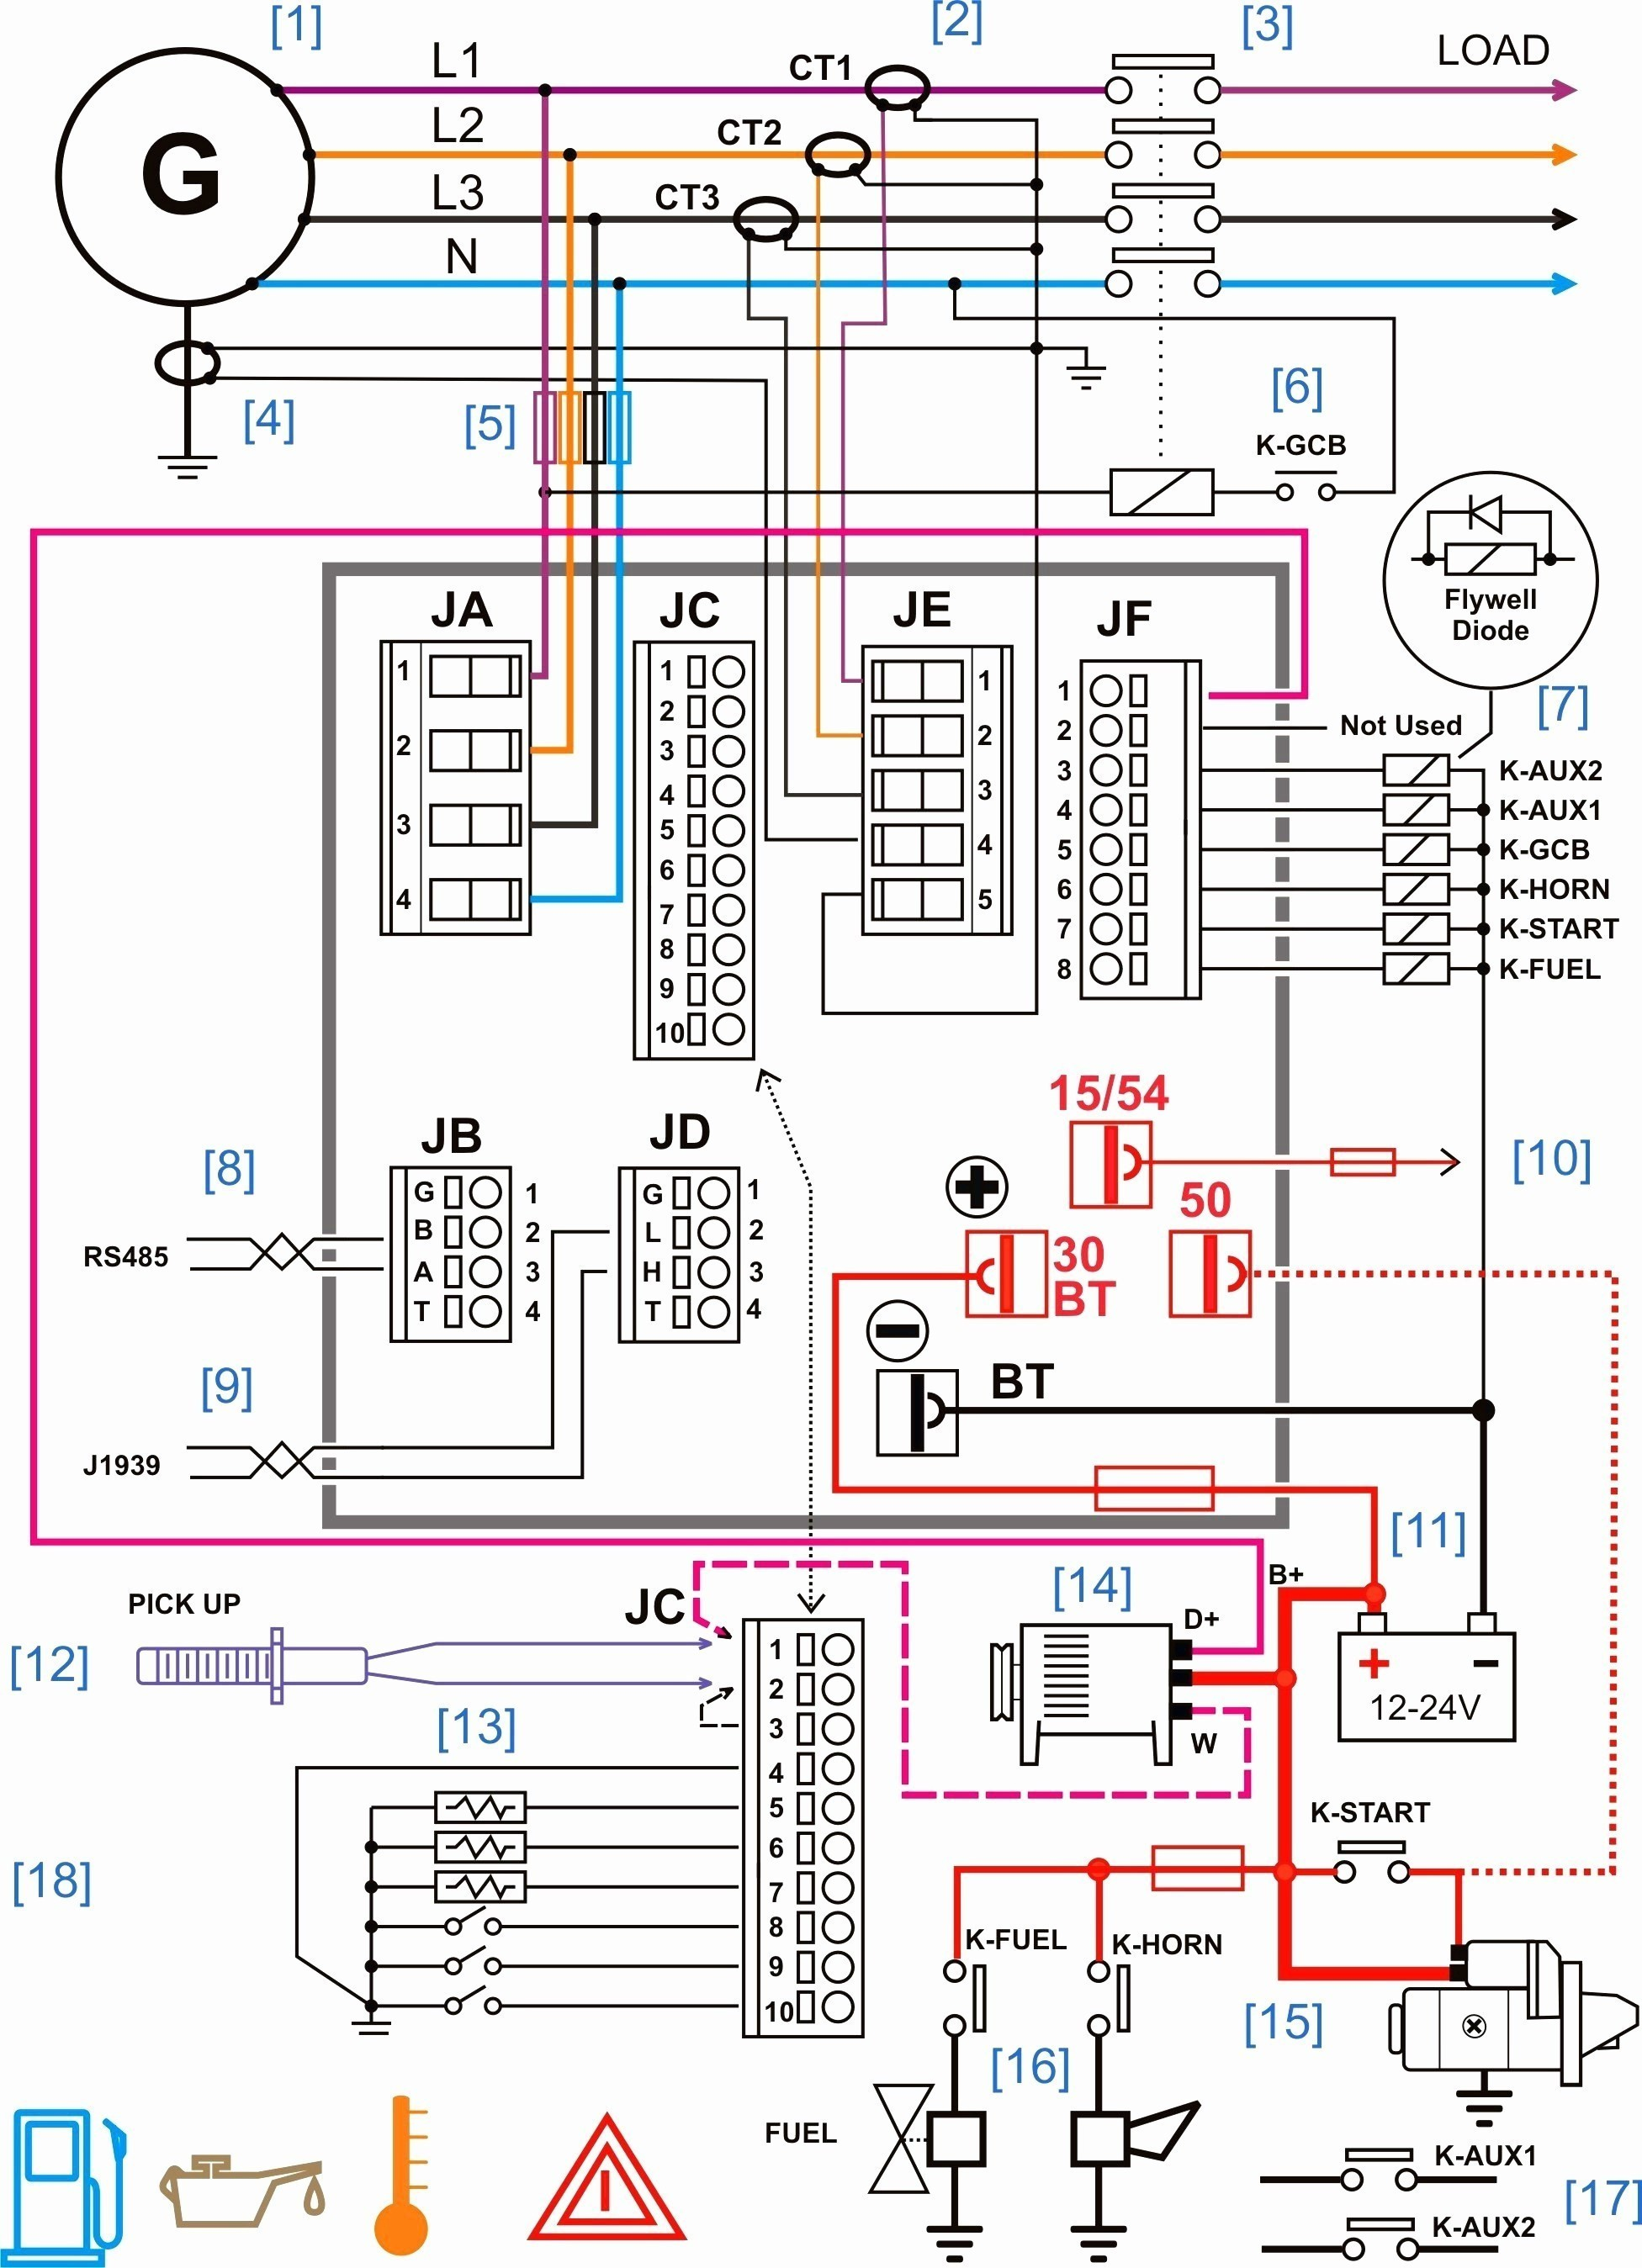 Electrical Diagrams for Cars Wiring Diagram Book Best Wiring Harness Diagram Book Car Stereo Of Electrical Diagrams for Cars